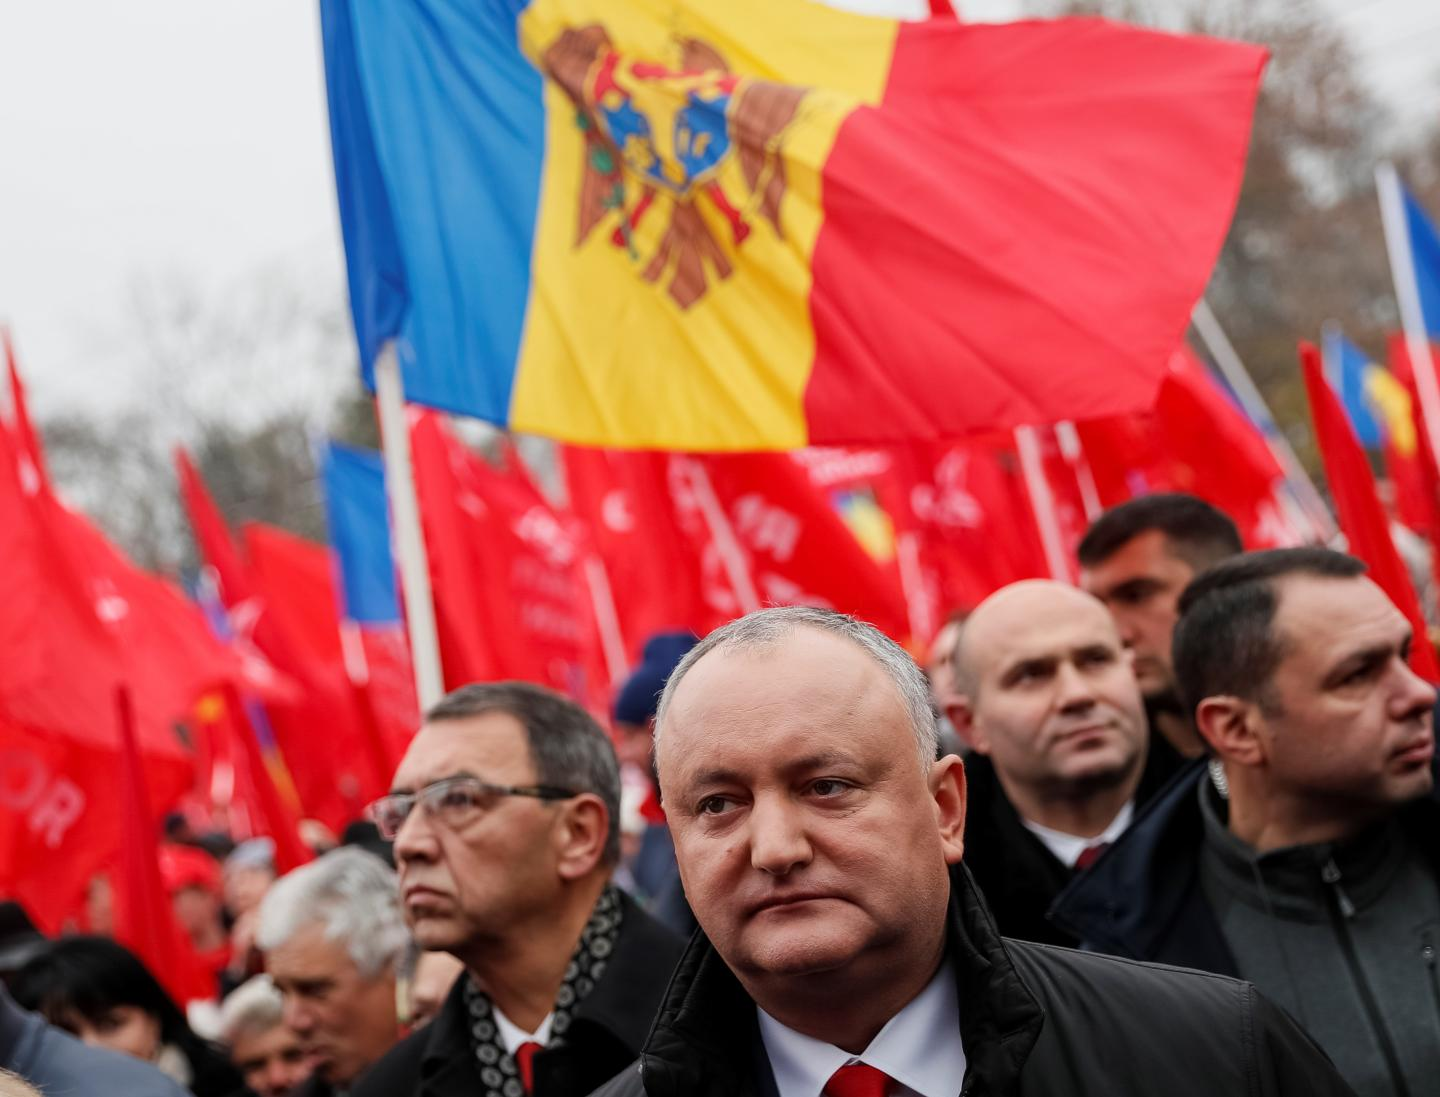 Moldova has Become a Geopolitical Battleground between Russia and the West